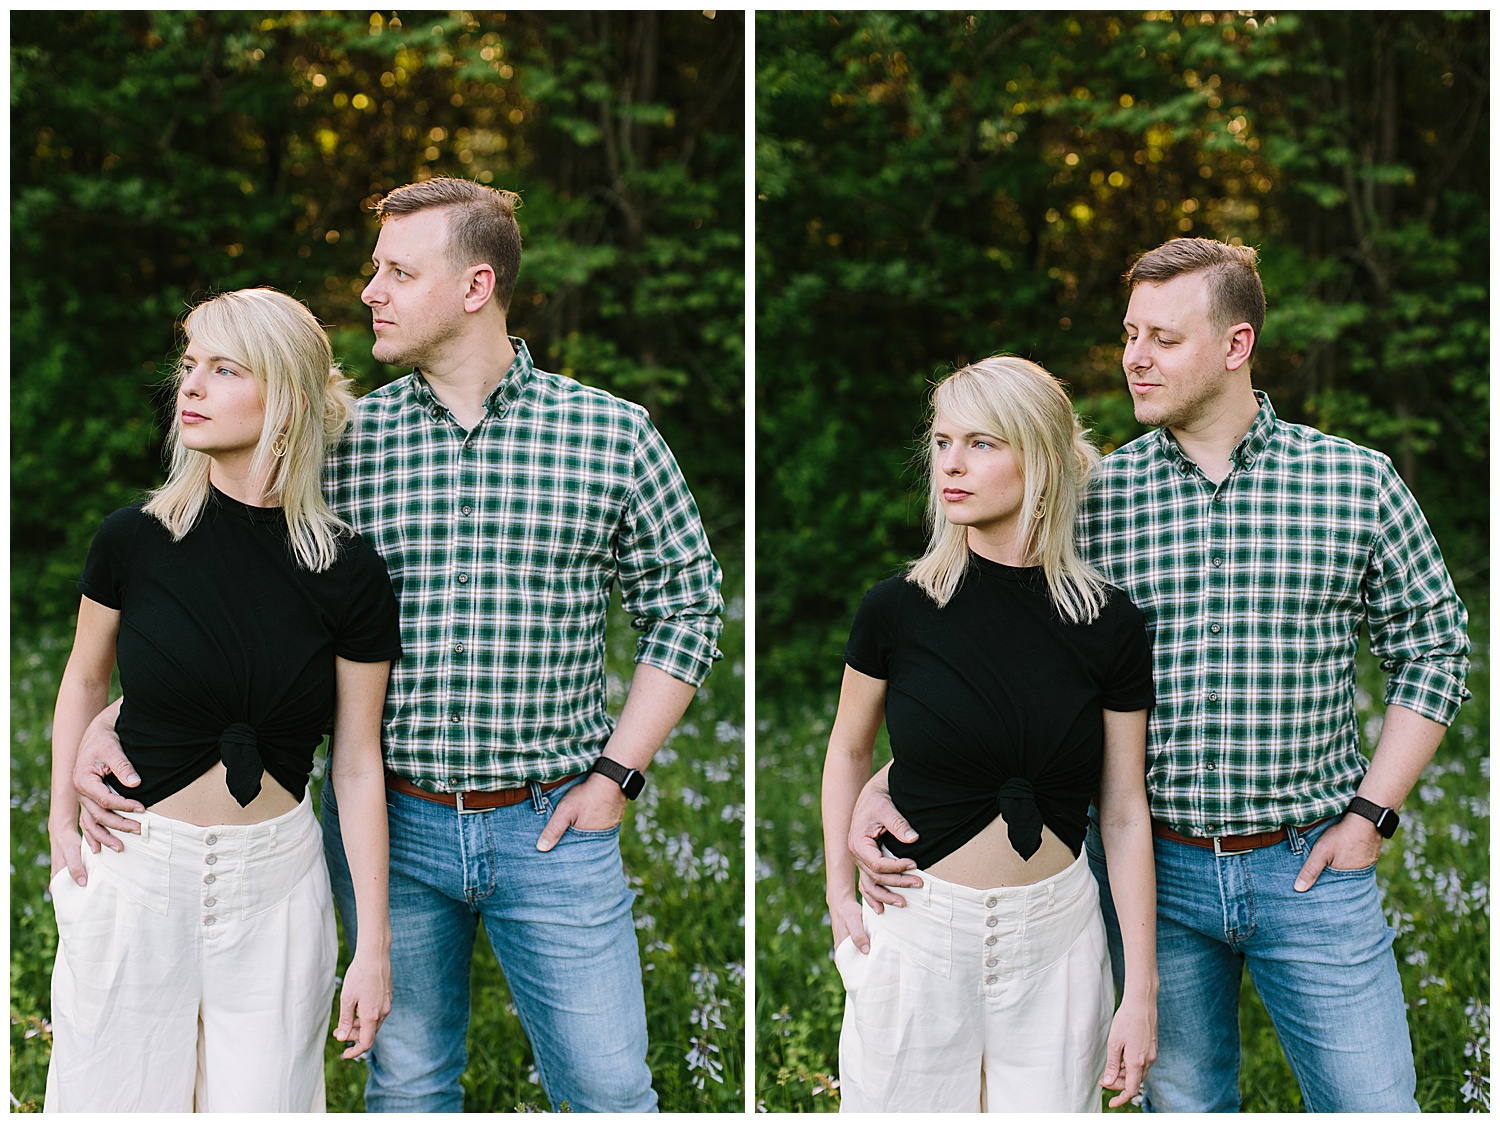 trent.and.kendra.photography.bernheim.forest.photos-28.jpg